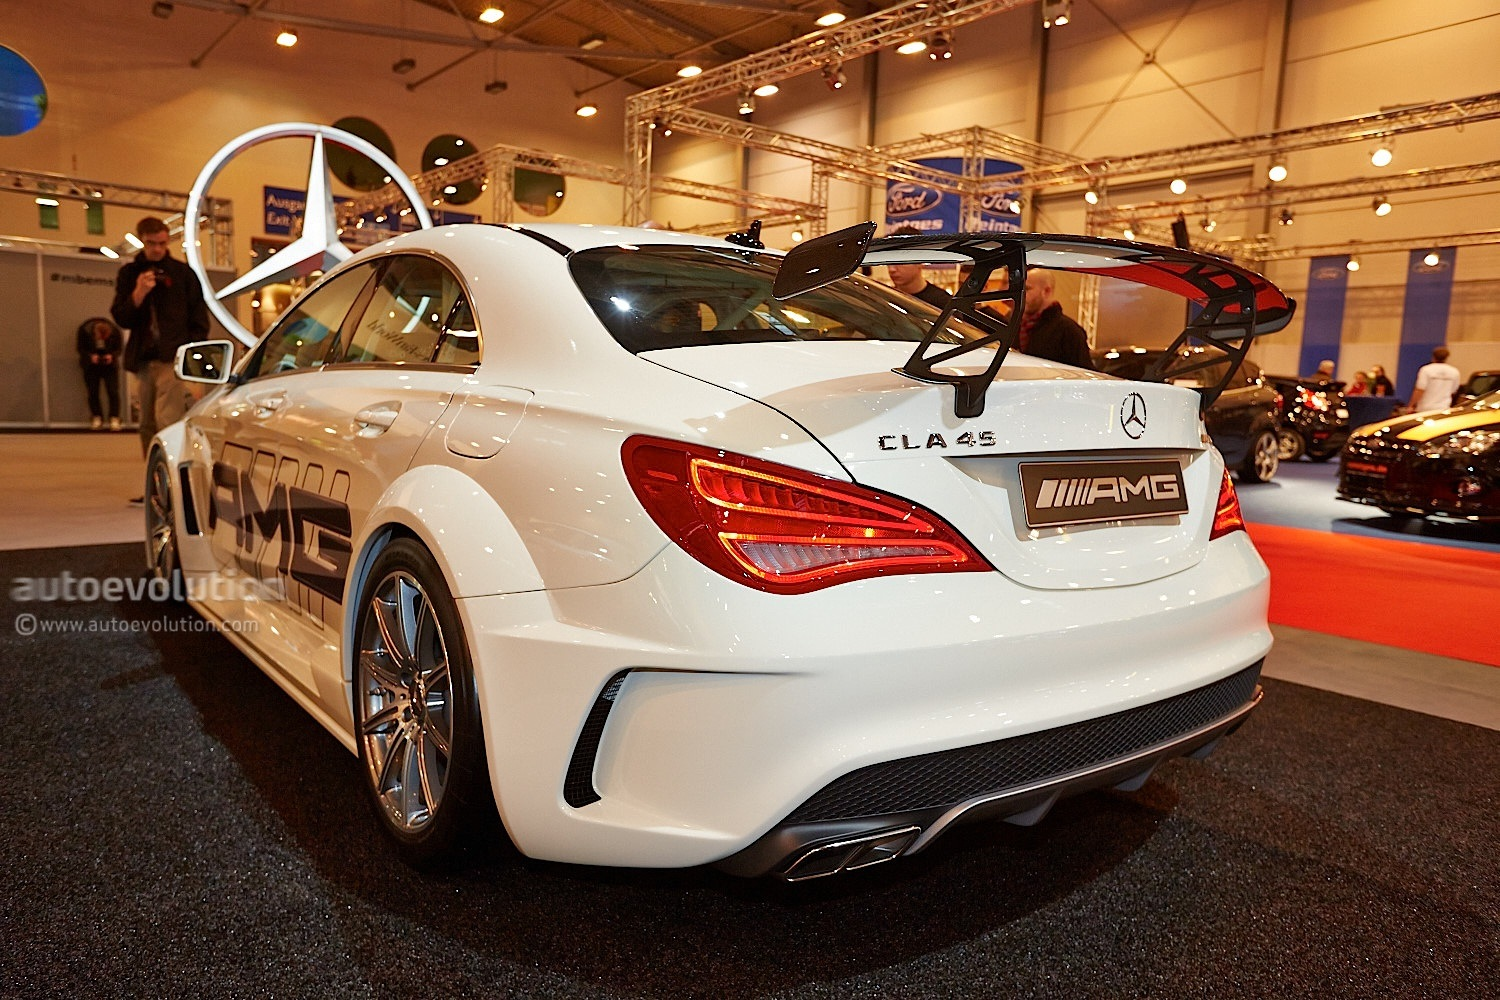 cla 45 amg racing series looks track hungry at essen. Black Bedroom Furniture Sets. Home Design Ideas